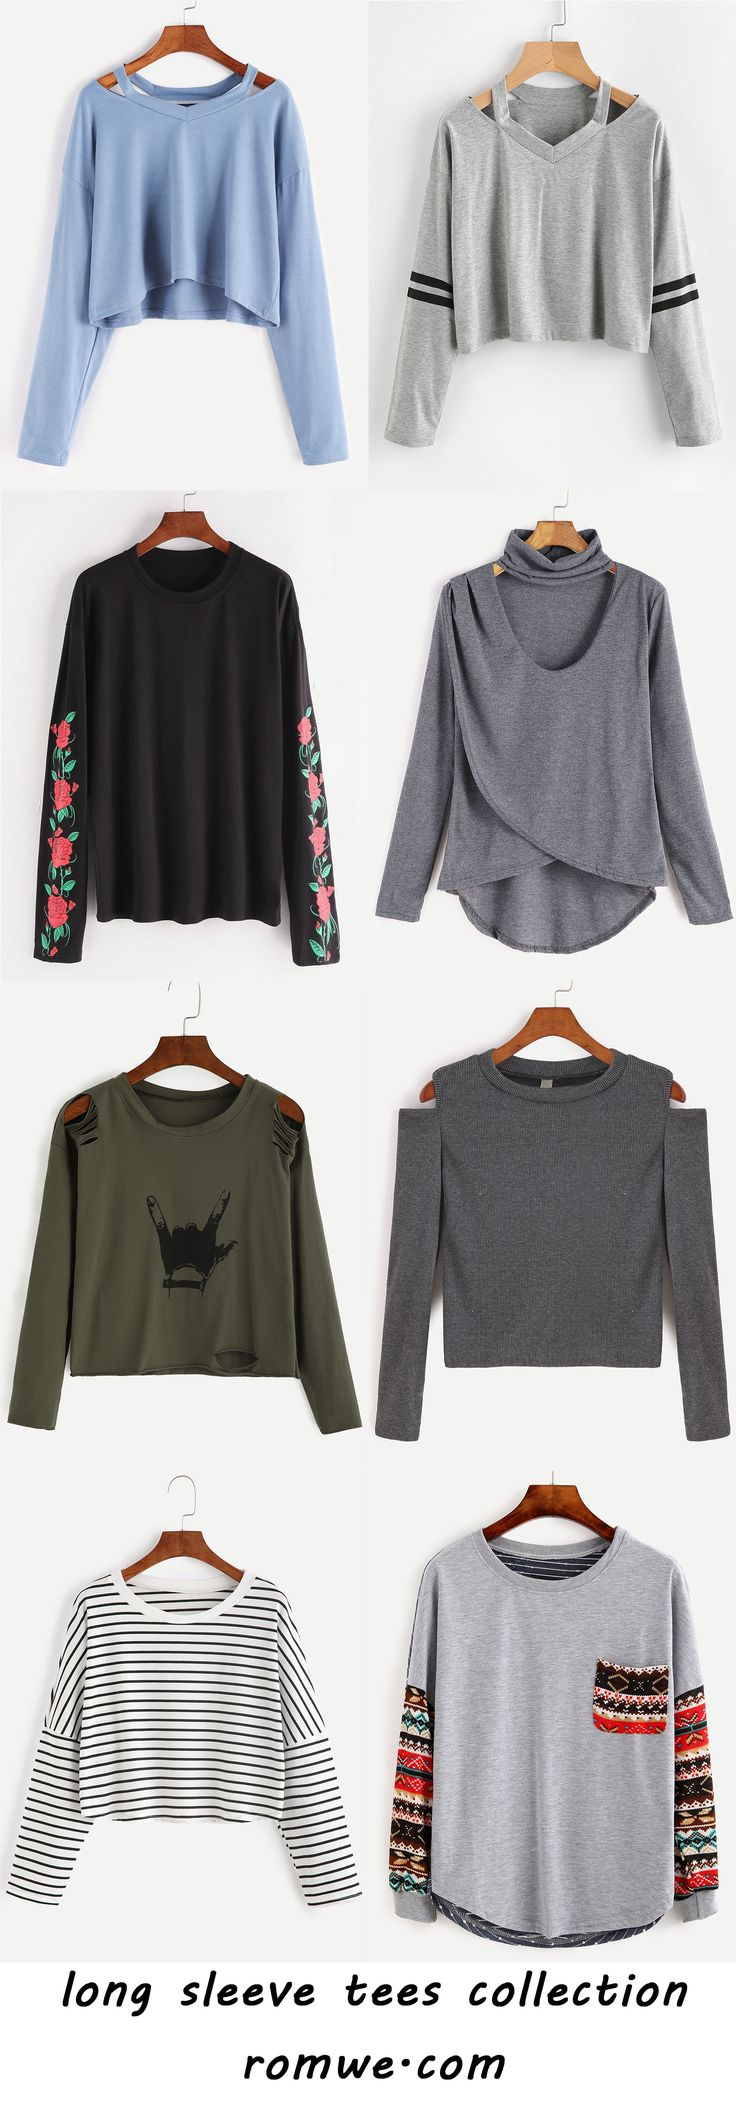 long sleeve tees collection 2017 - romwe.com